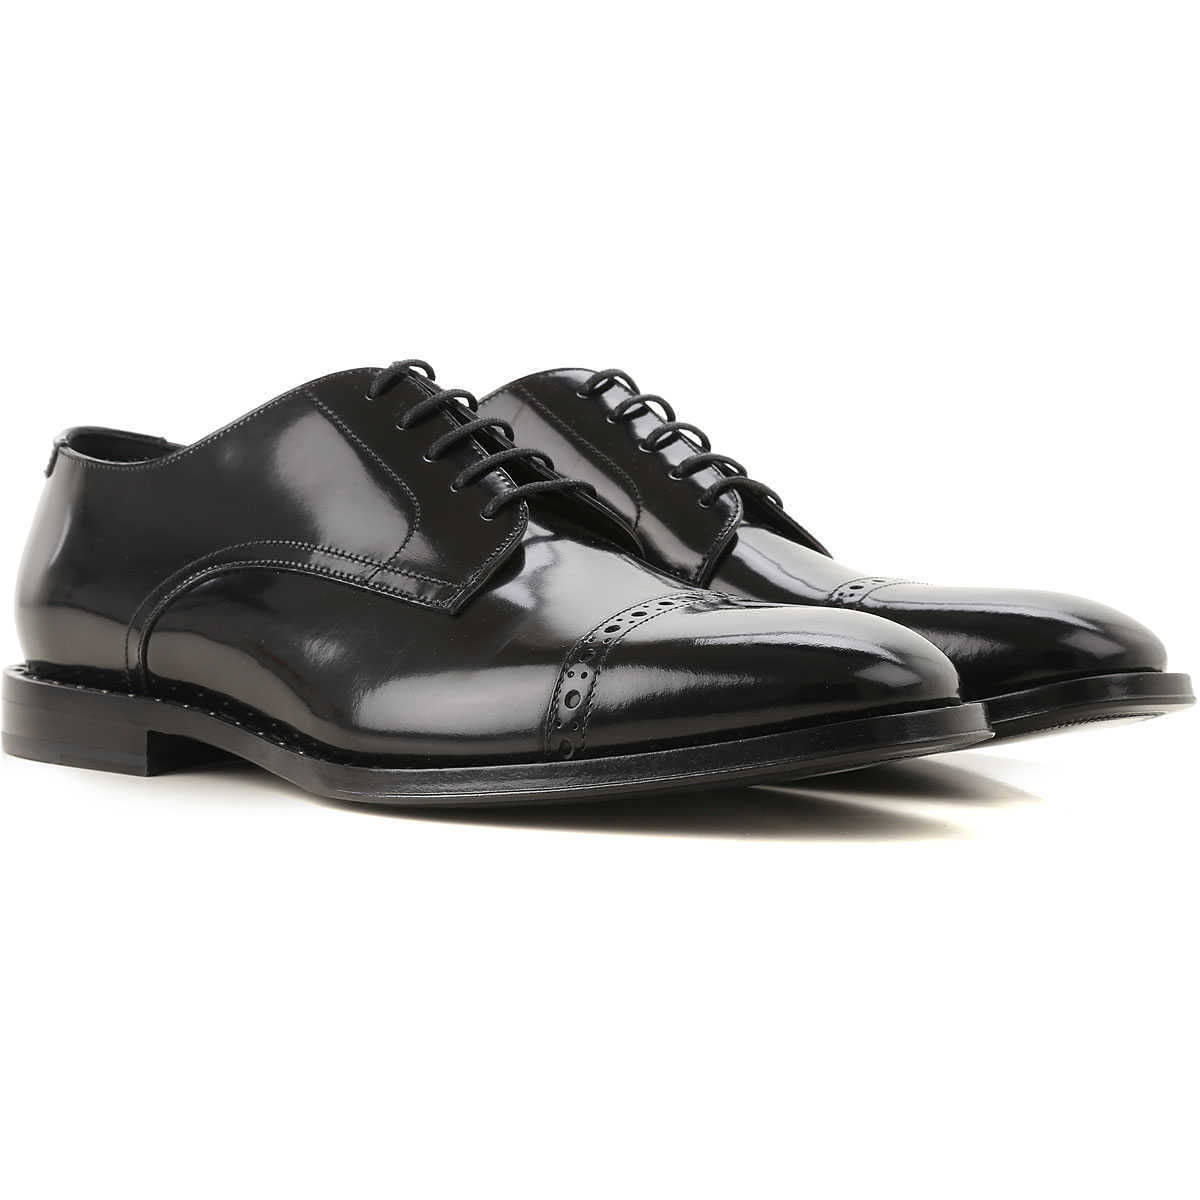 Jimmy Choo Lace Up Shoes for Men Oxfords 7 7.5 Derbies and Brogues On Sale in Outlet UK - GOOFASH